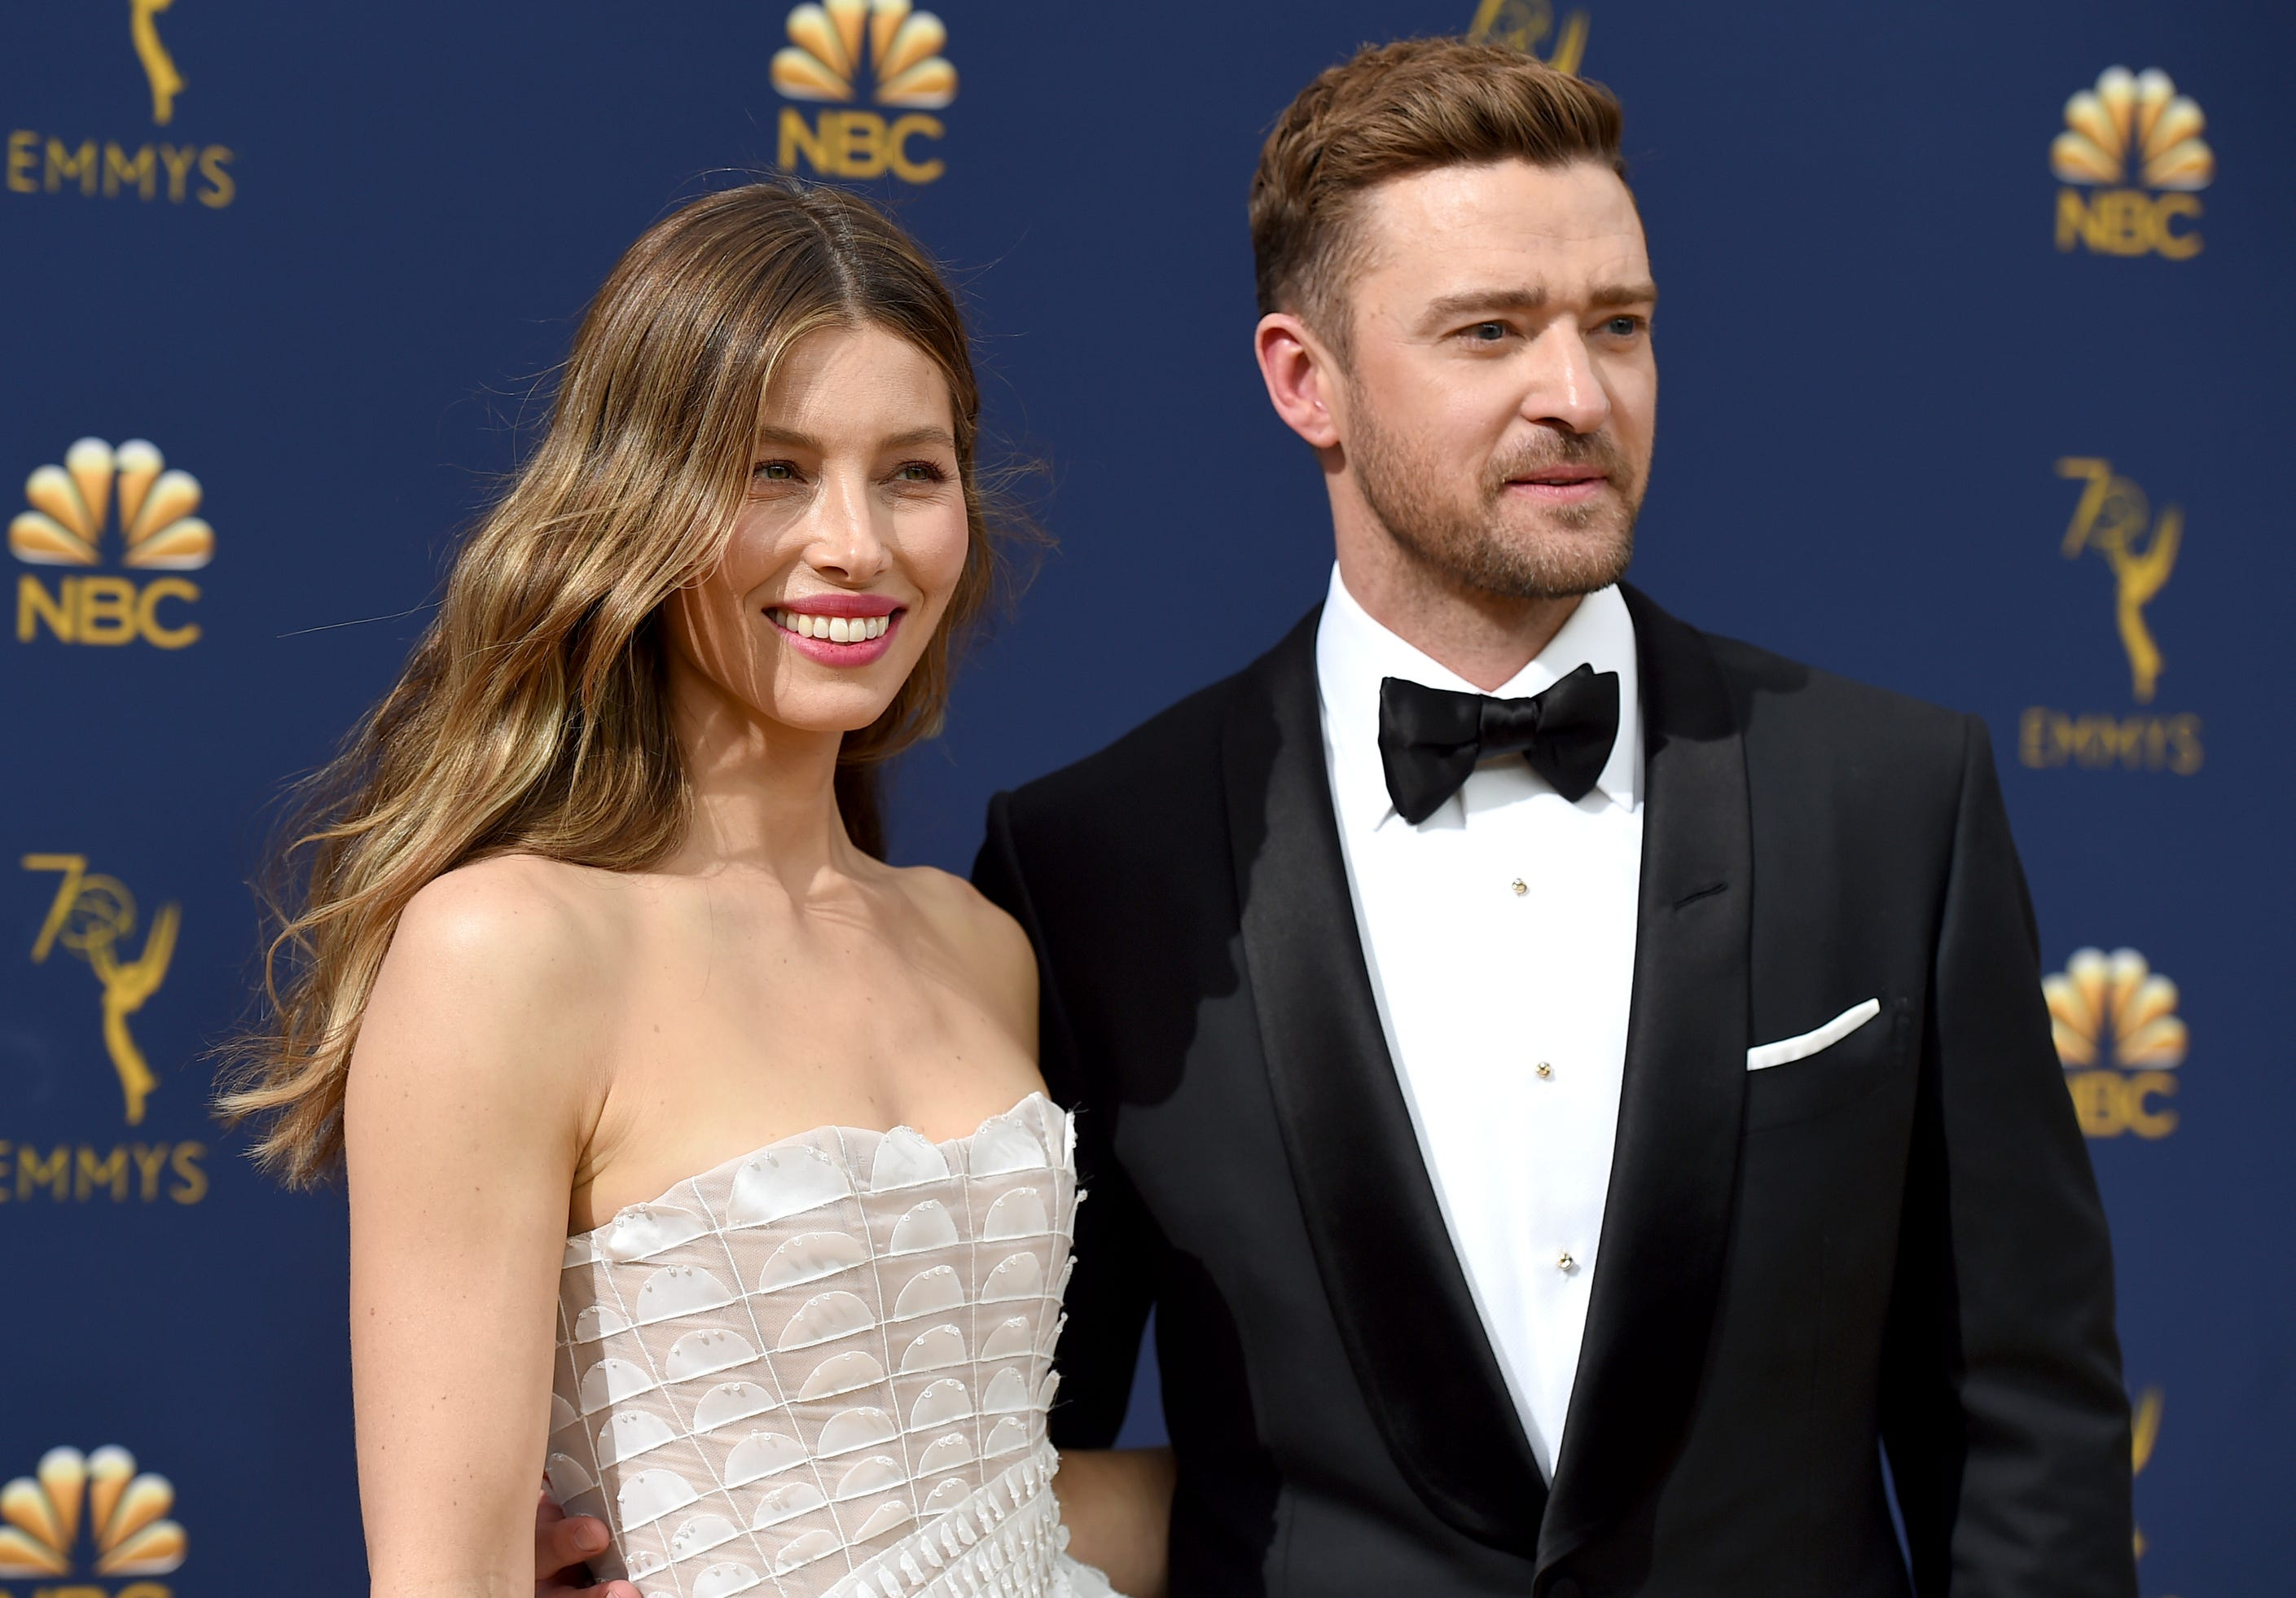 Justin Timberlake and Jessica Biel: A timeline of their romance